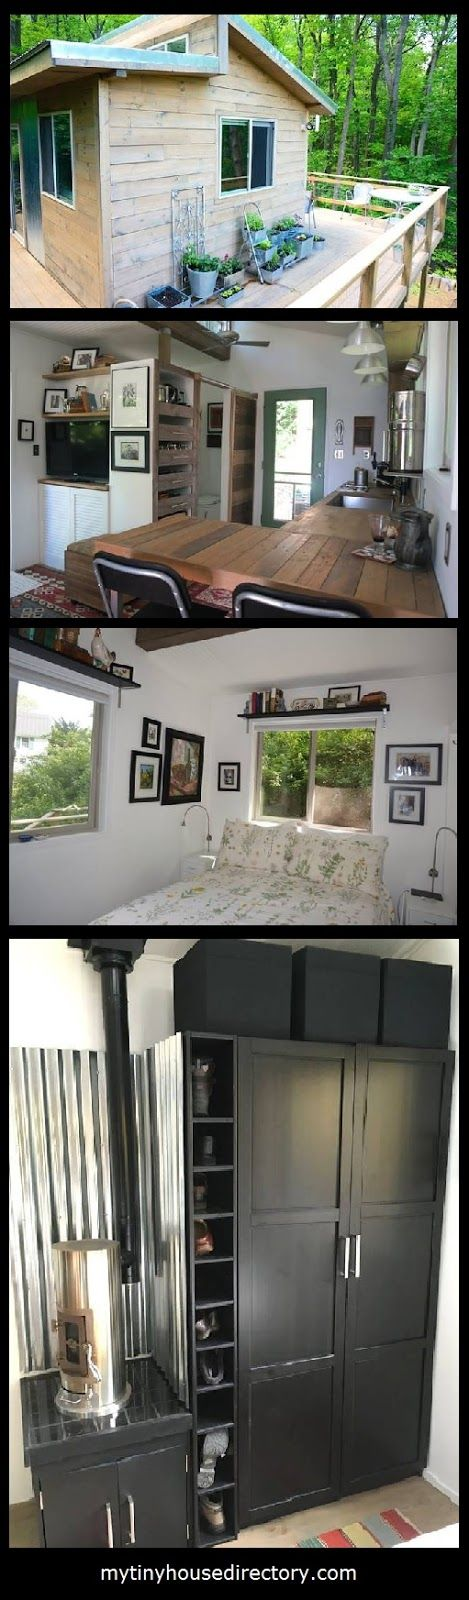 1804 best tiny house love images on pinterest small houses tiny